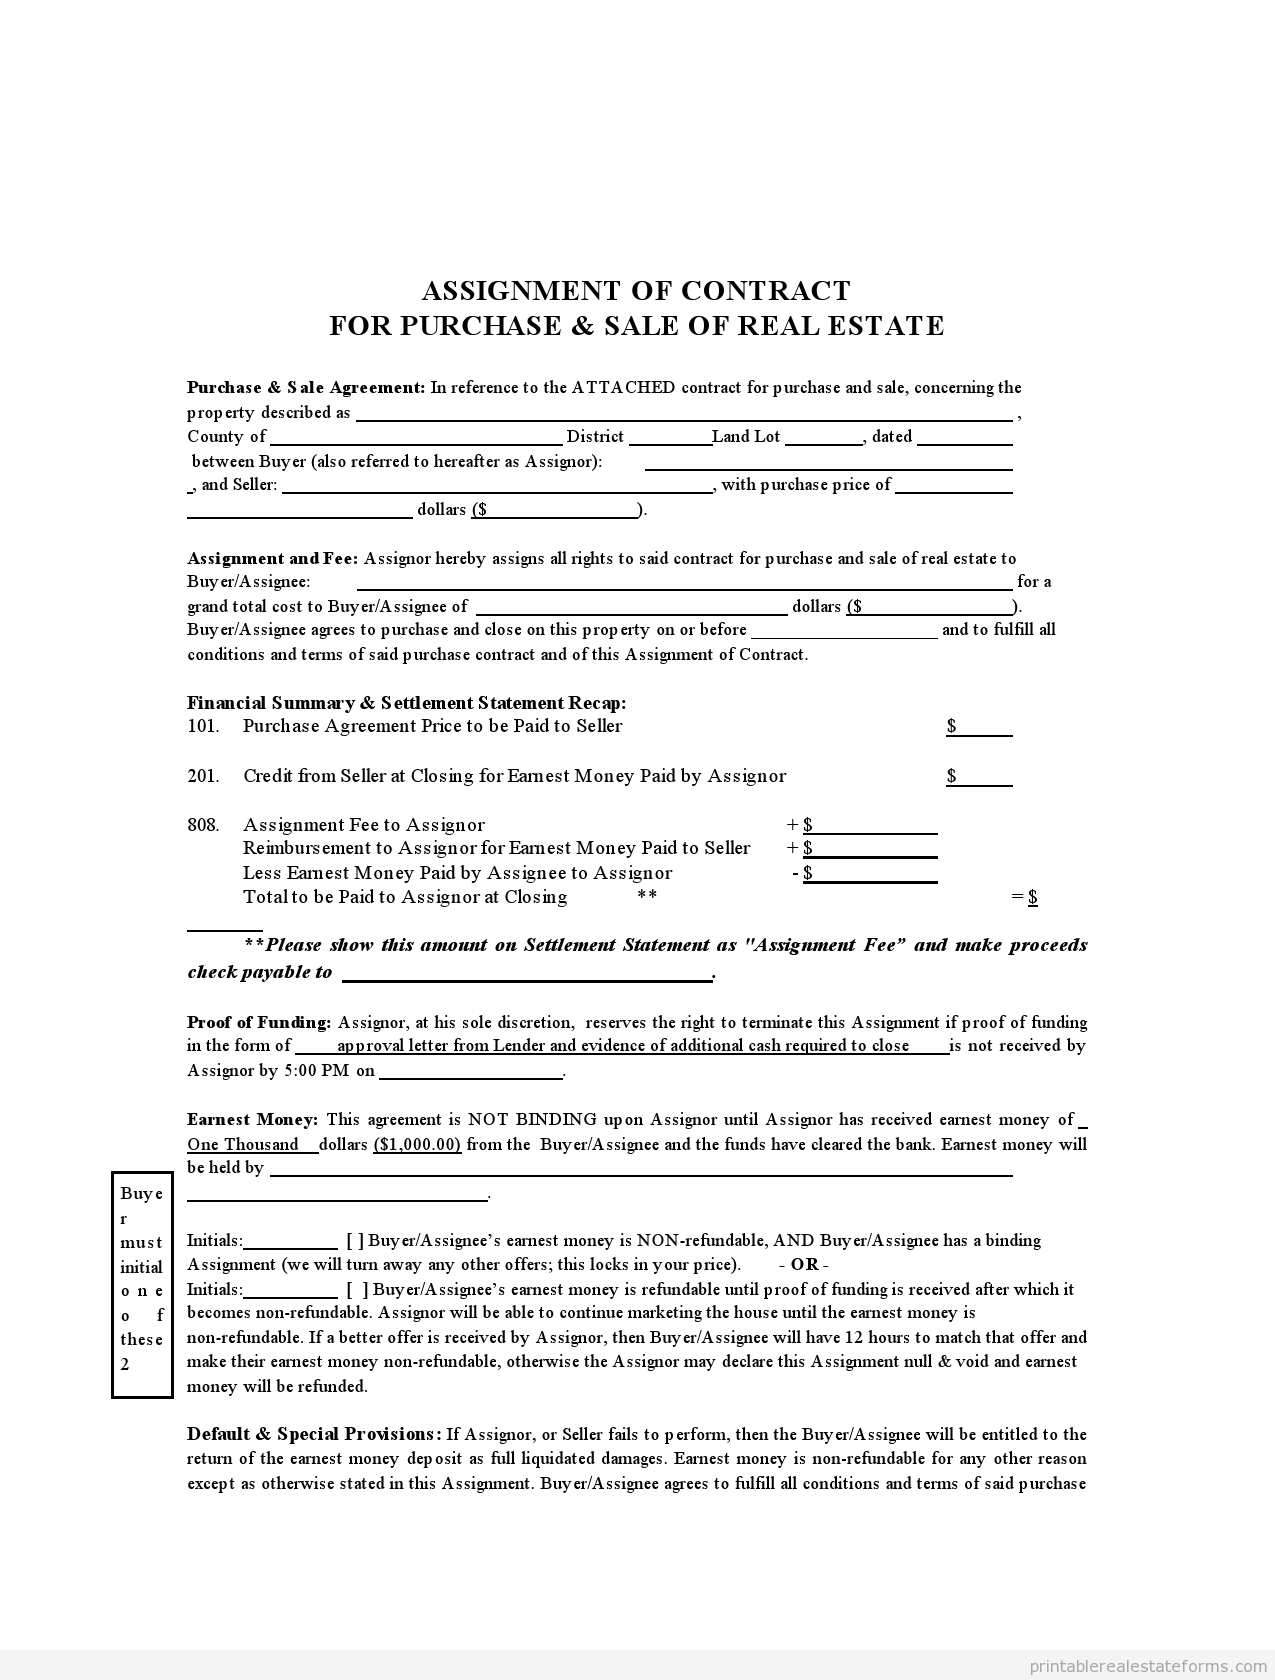 Contract agreement statement - Sample Printable Assignment Of Contract Form